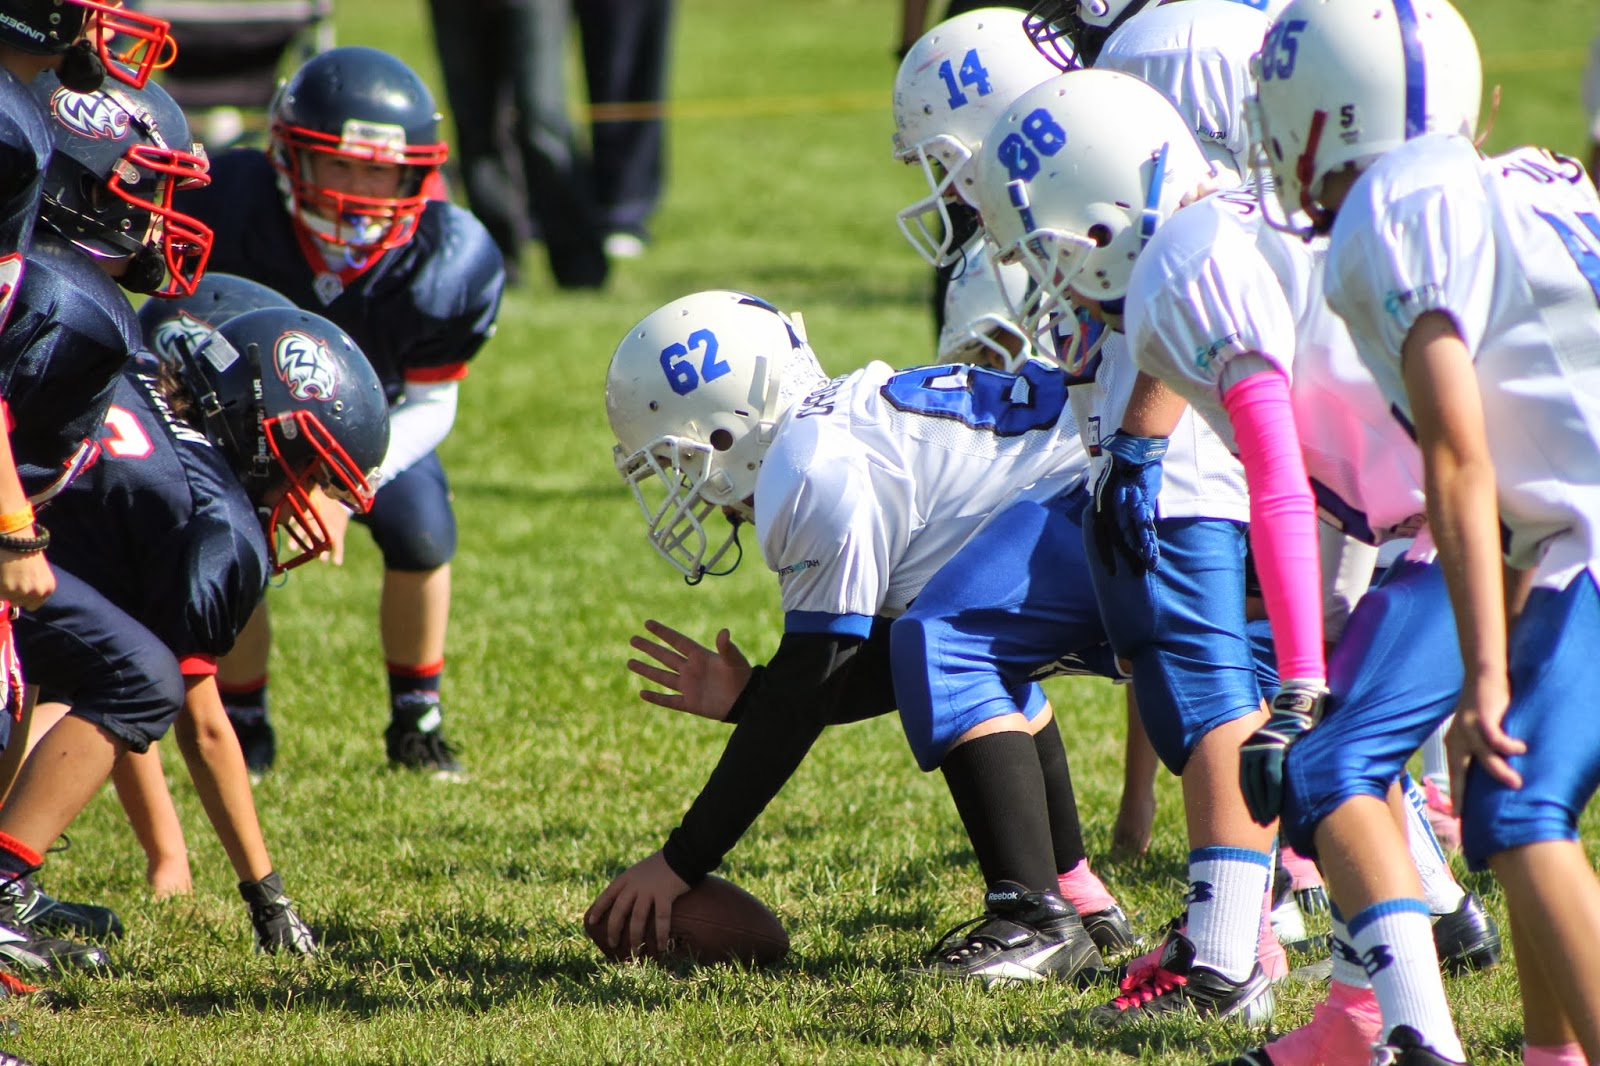 Pee - Wee Football Specific Information